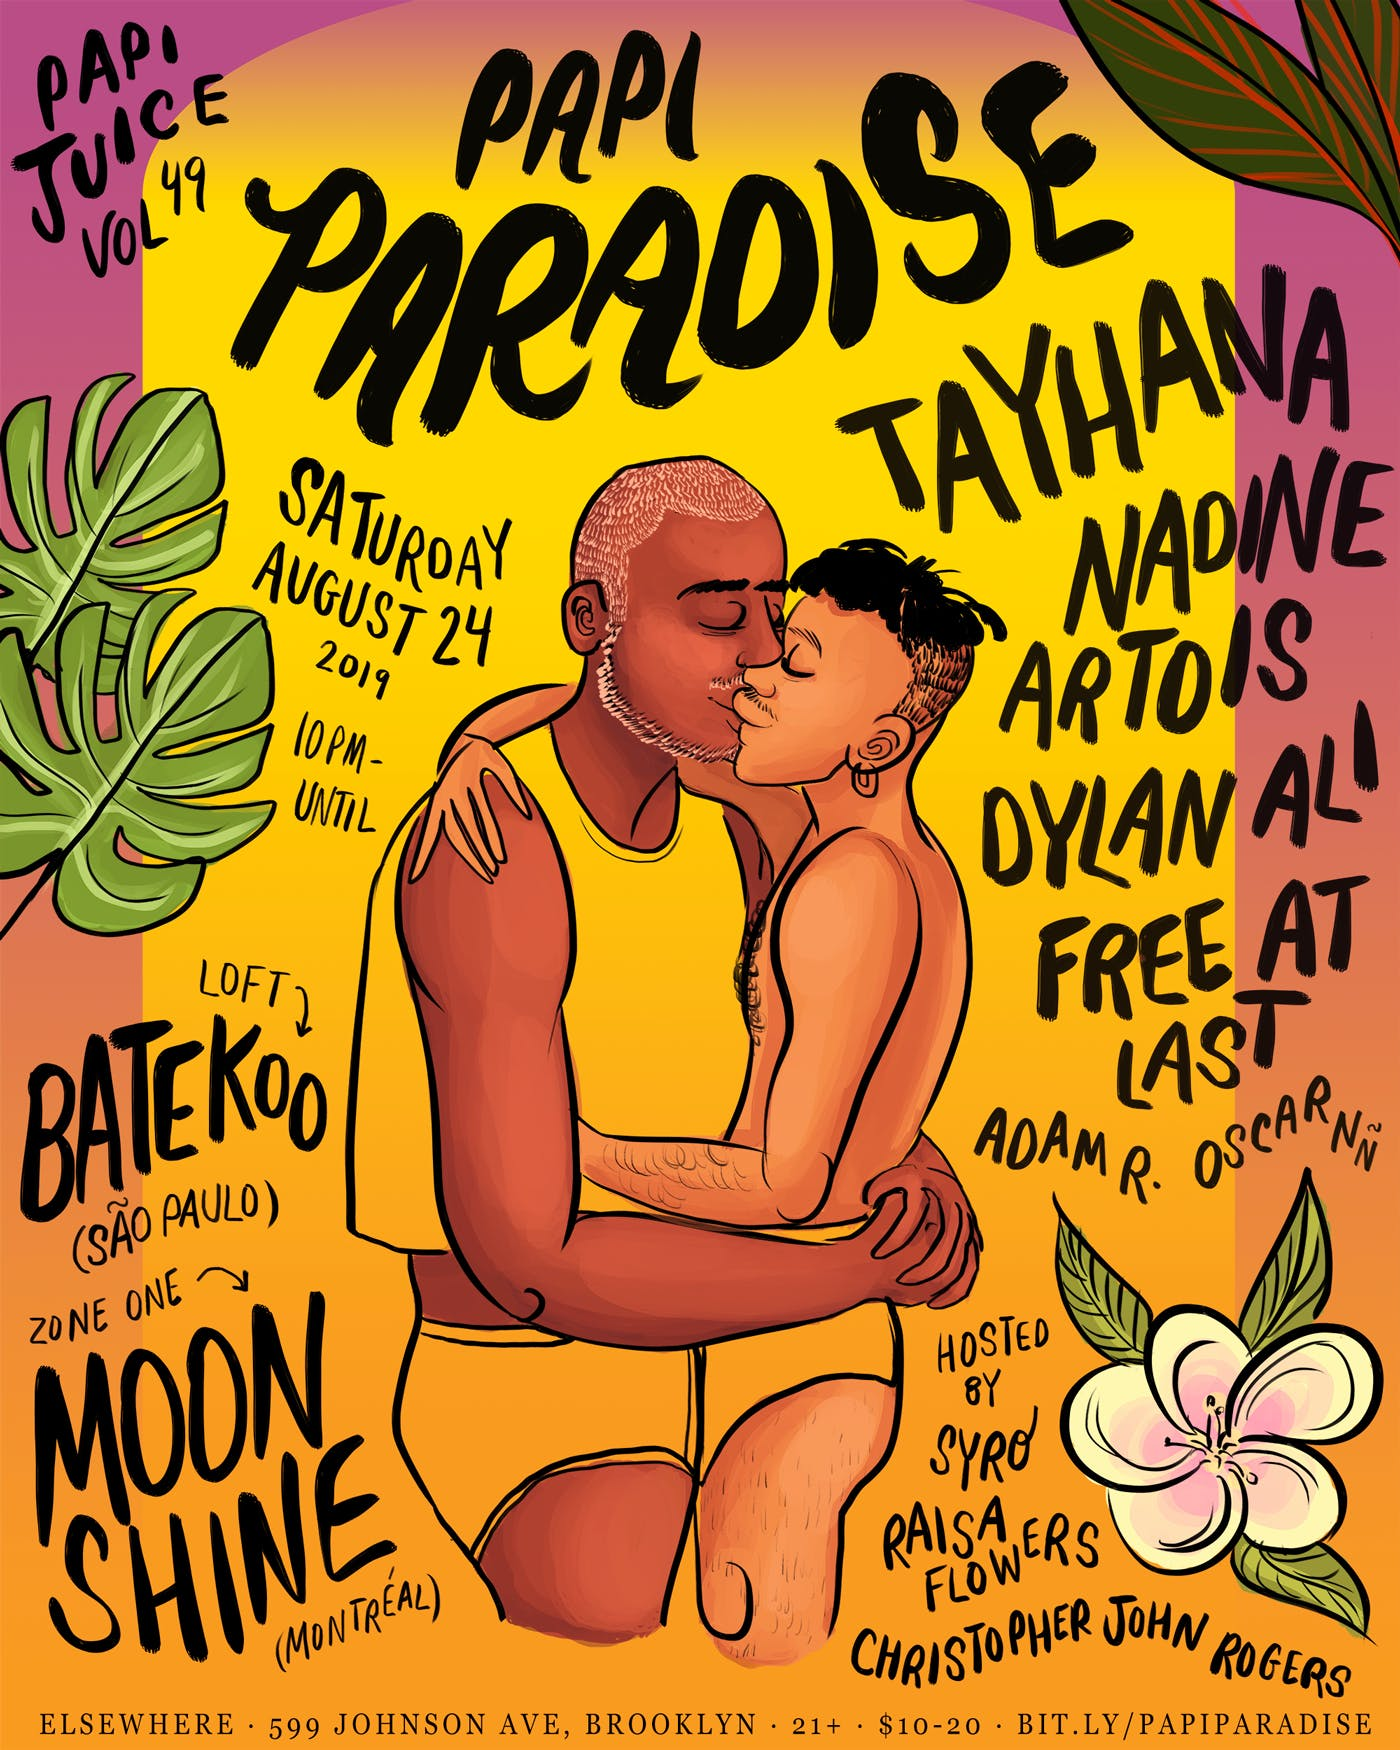 Papi Juice Vol. 49: Papi Paradise w/ Tayhana, Nadine Artois, Dylan Ali, Free At Last, Batekoo, Moon Shine and more